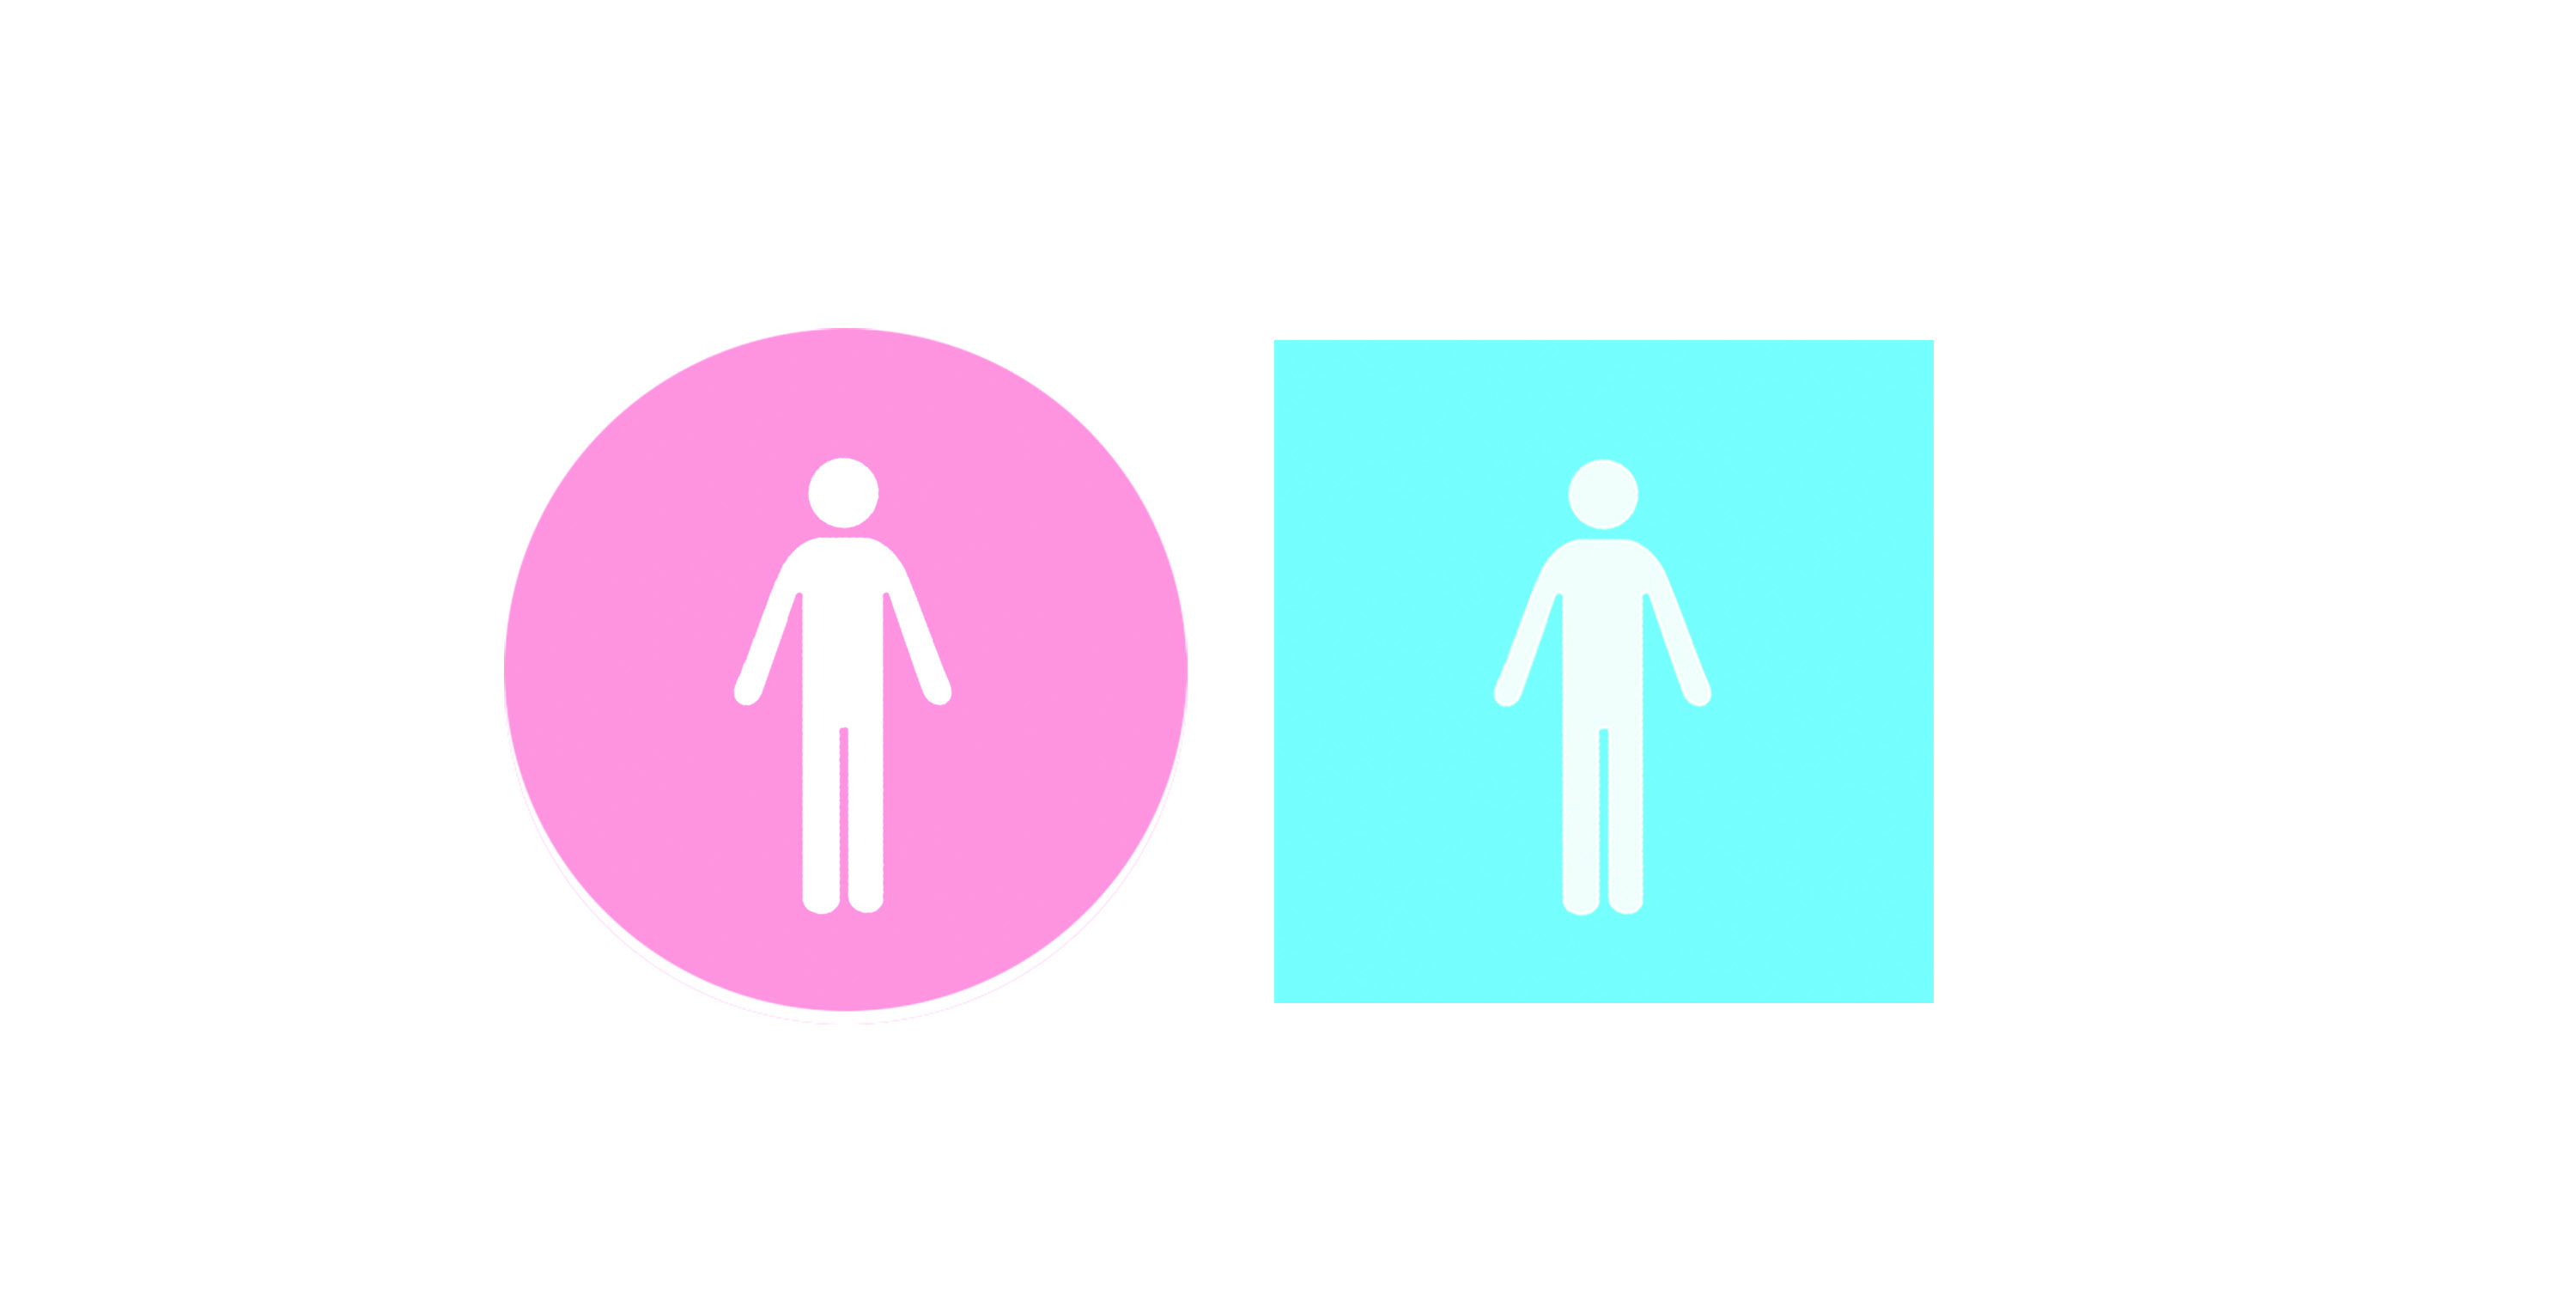 Tip of the icon examining socially symbolic indexical signage gender friendly socially symbolic indexical restroom signage figures biocorpaavc Image collections